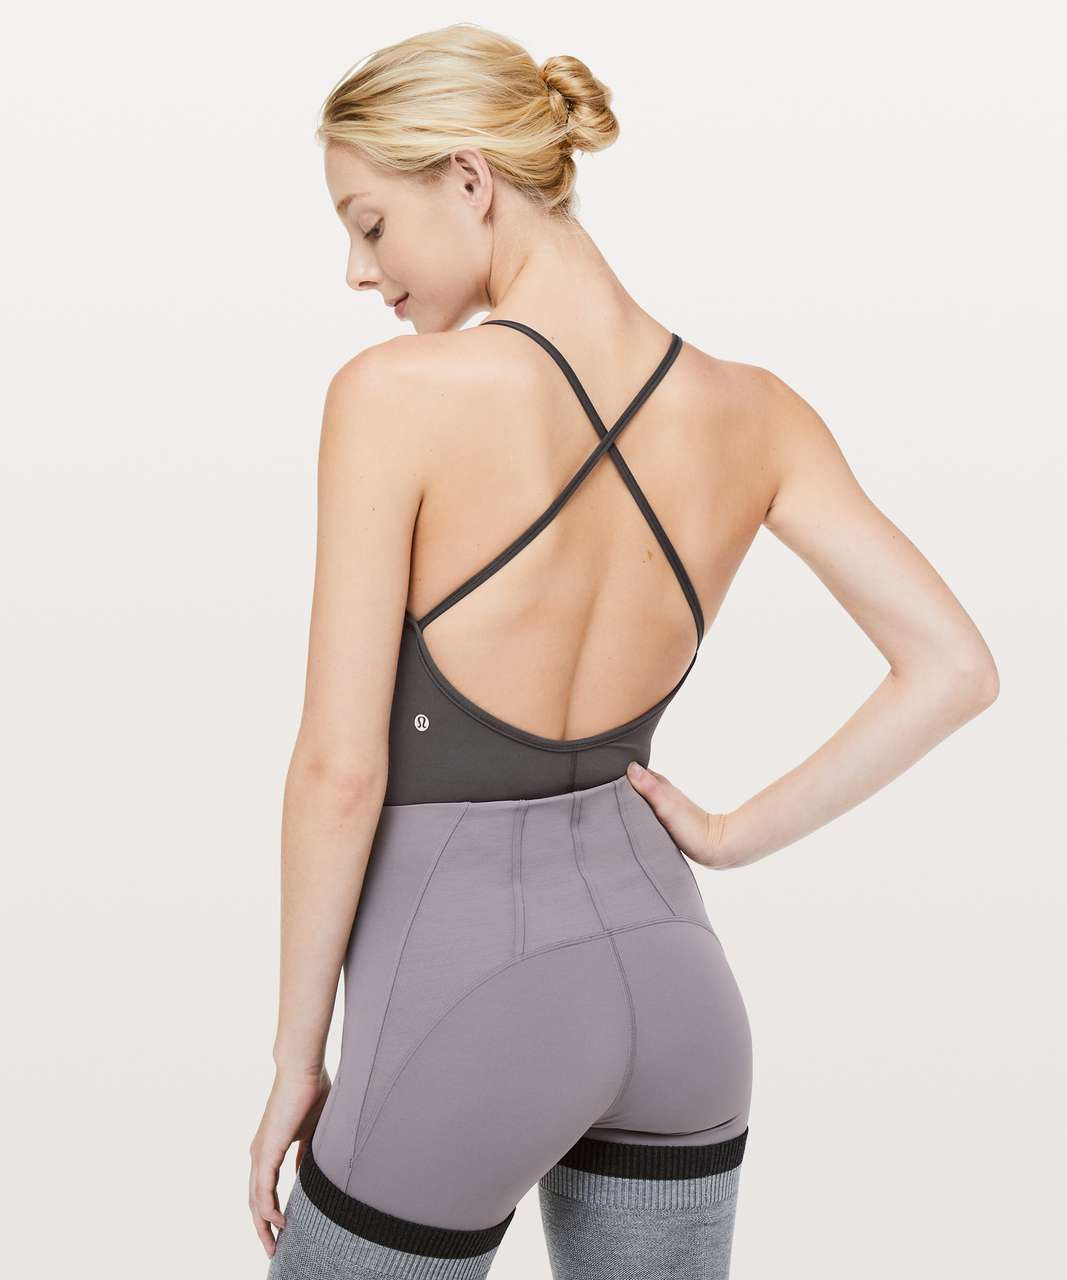 Lululemon Principal Dancer Leotard - Soot